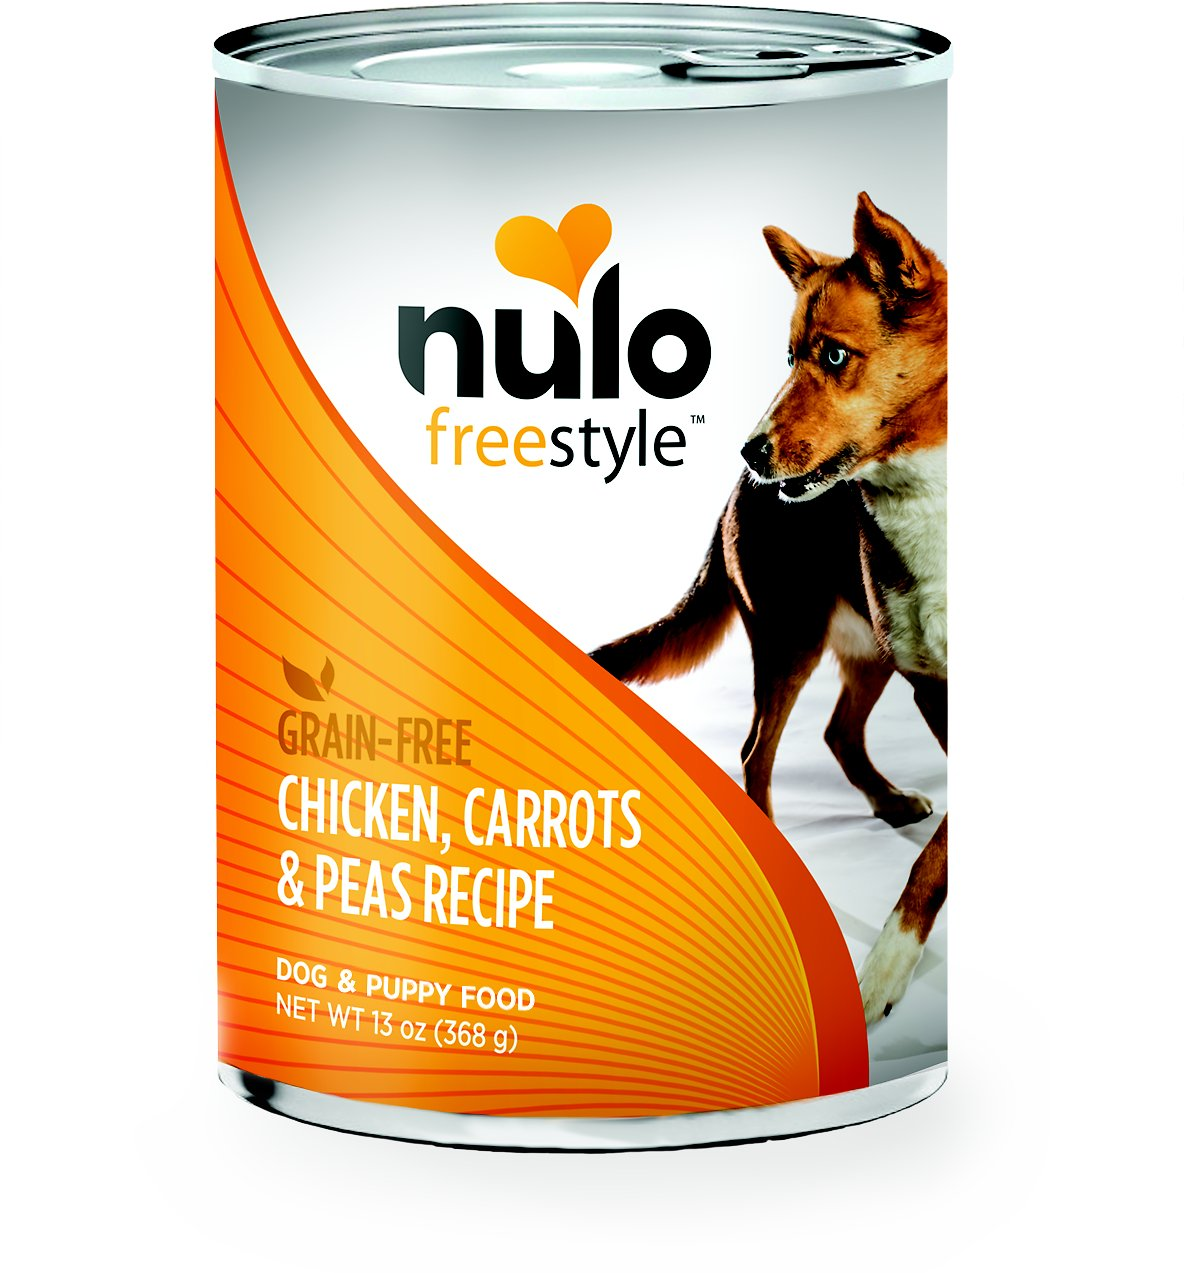 Nulo Dog Freestyle Pate Chicken, Carrots & Peas Recipe Grain-Free Canned Dog Food, 13-oz